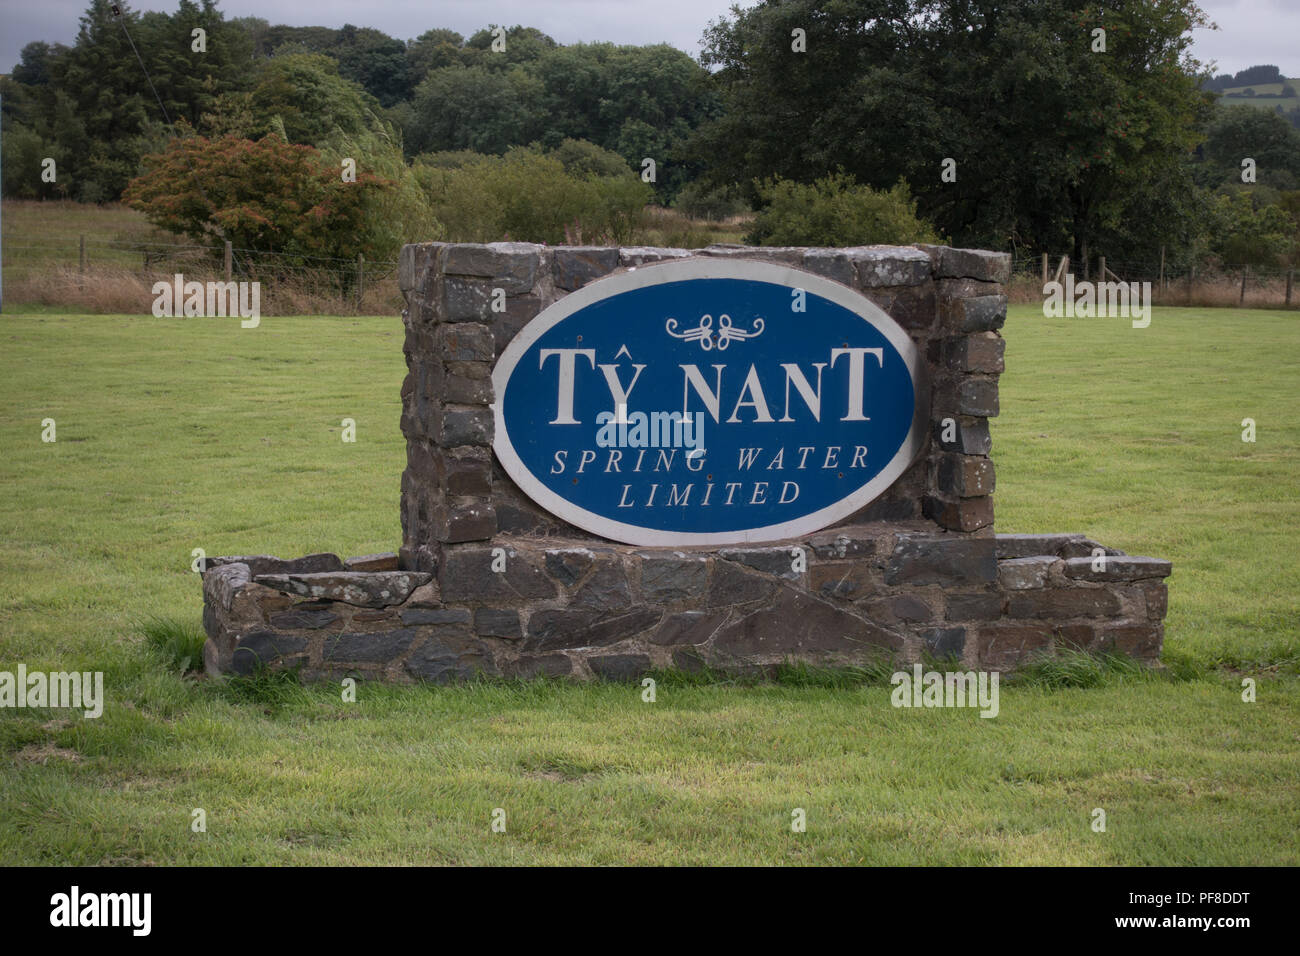 Ty Nant Spring Water Limited. Sign at entrance. Wales - Stock Image